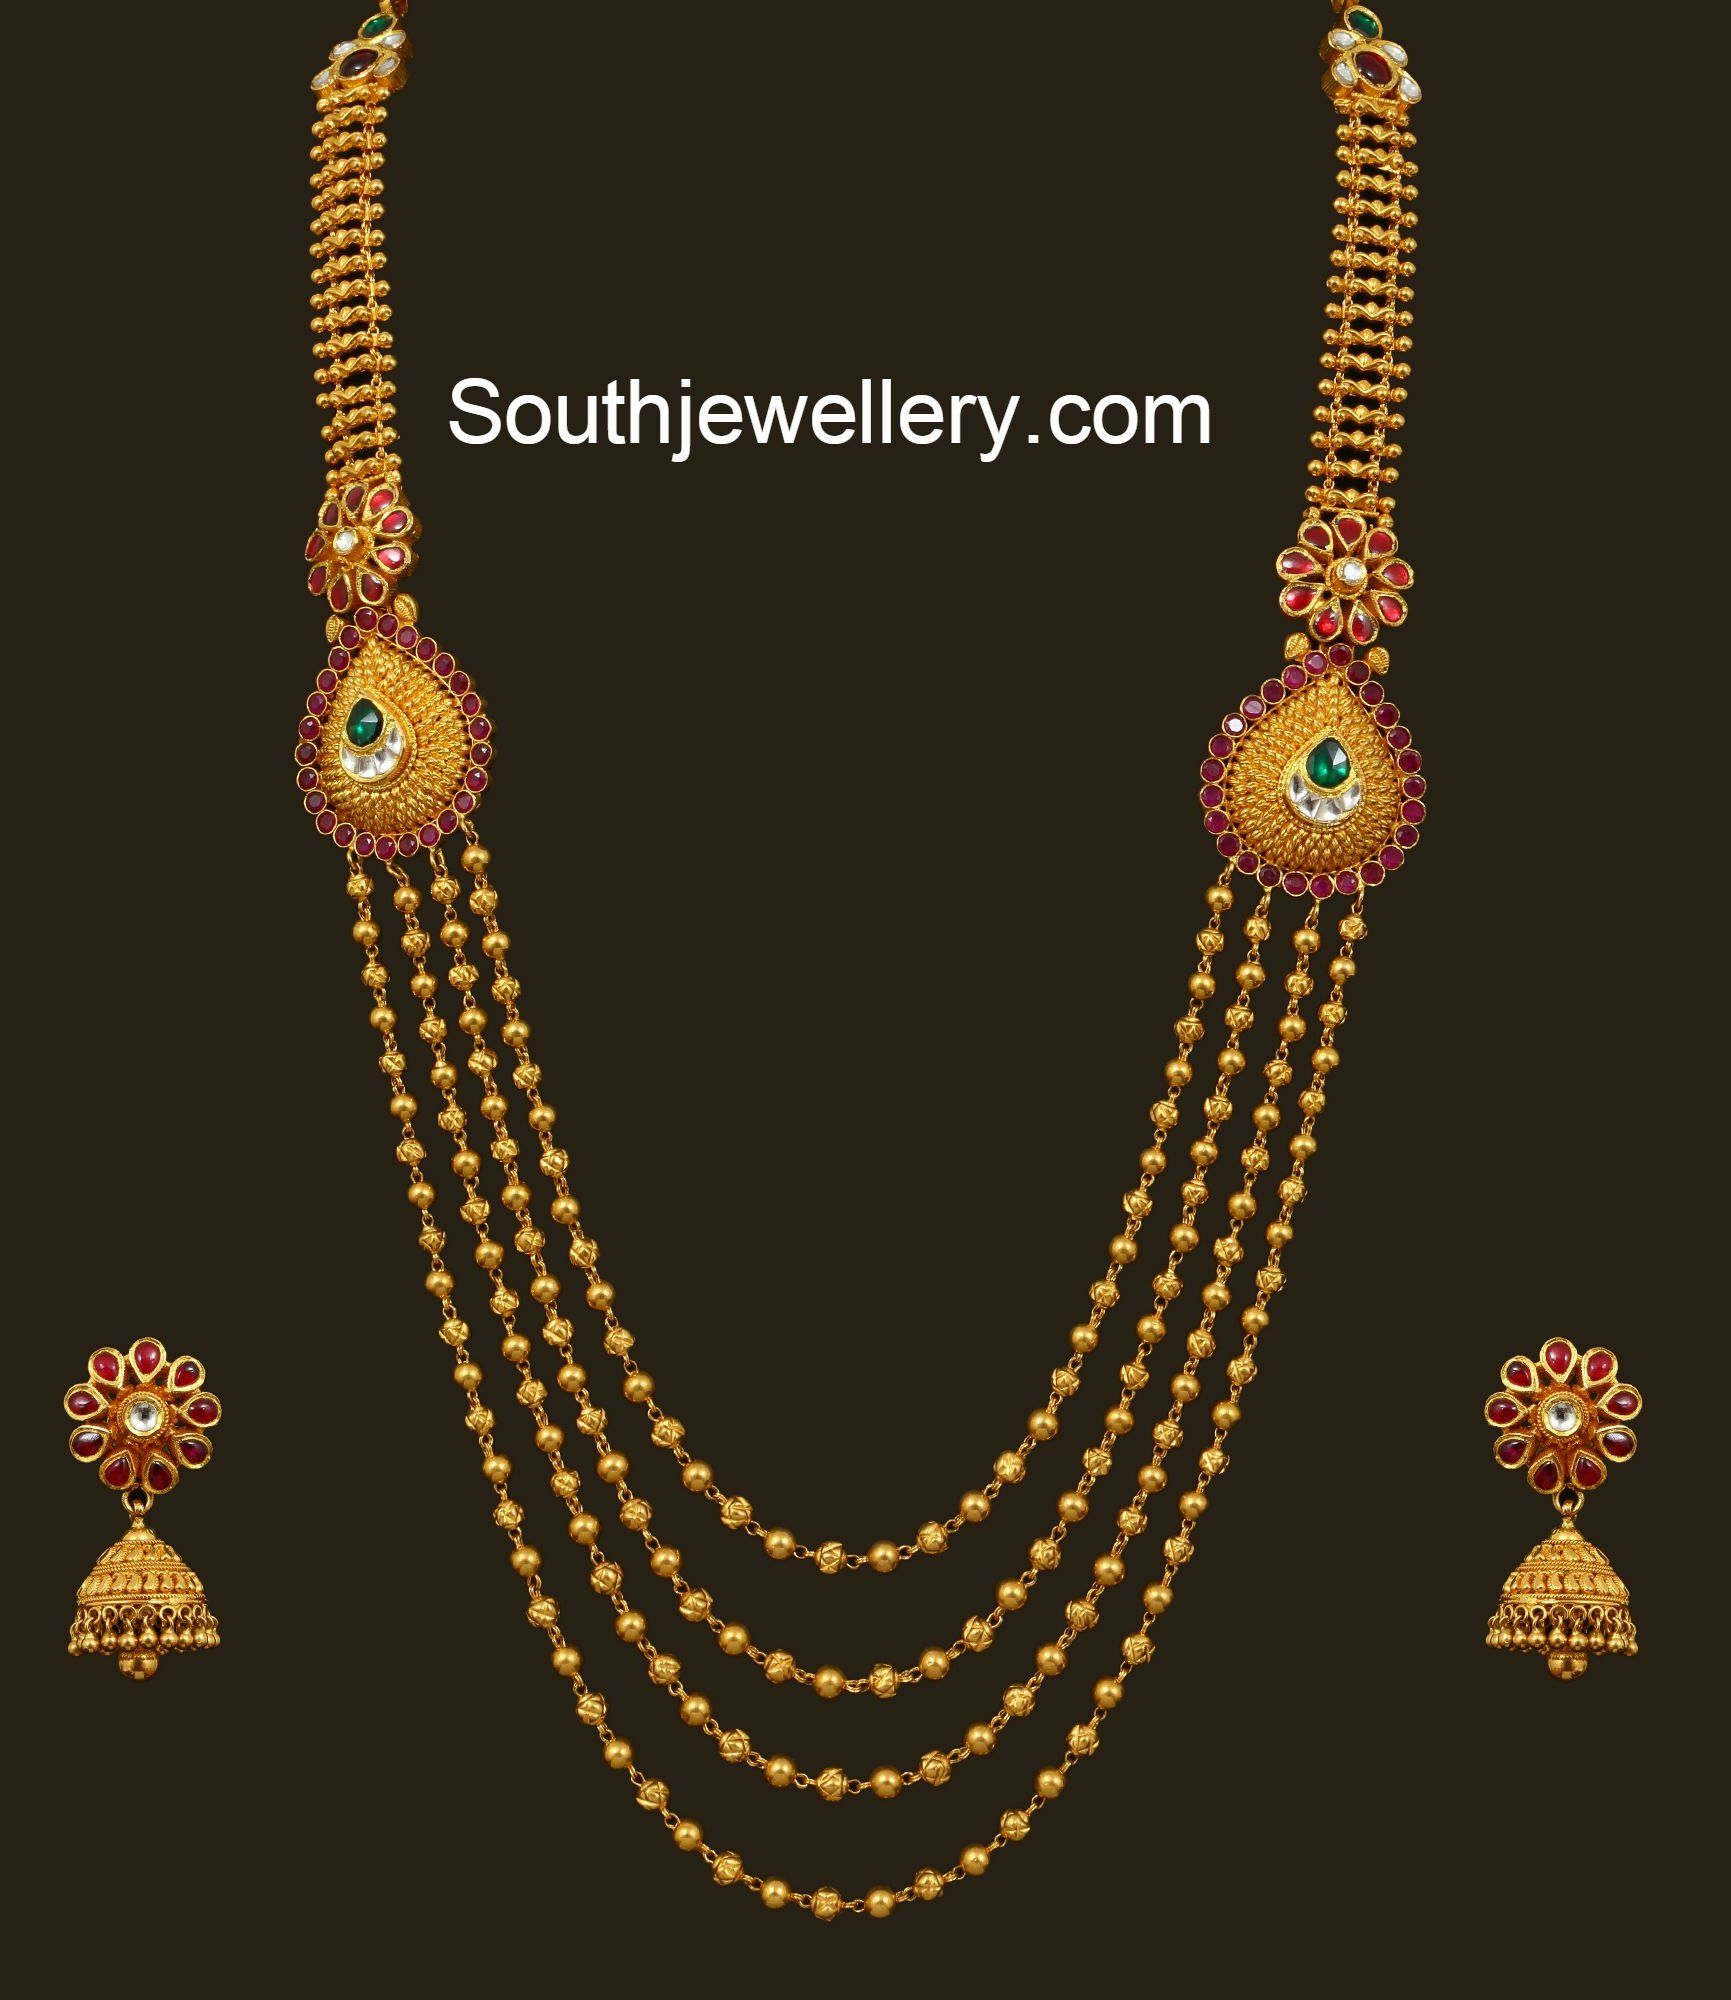 Latest gold necklace designs in grams pachi necklace latest jewellery - Gundla Mala Latest Jewelry Designs Page 4 Of 16 Jewellery Designs